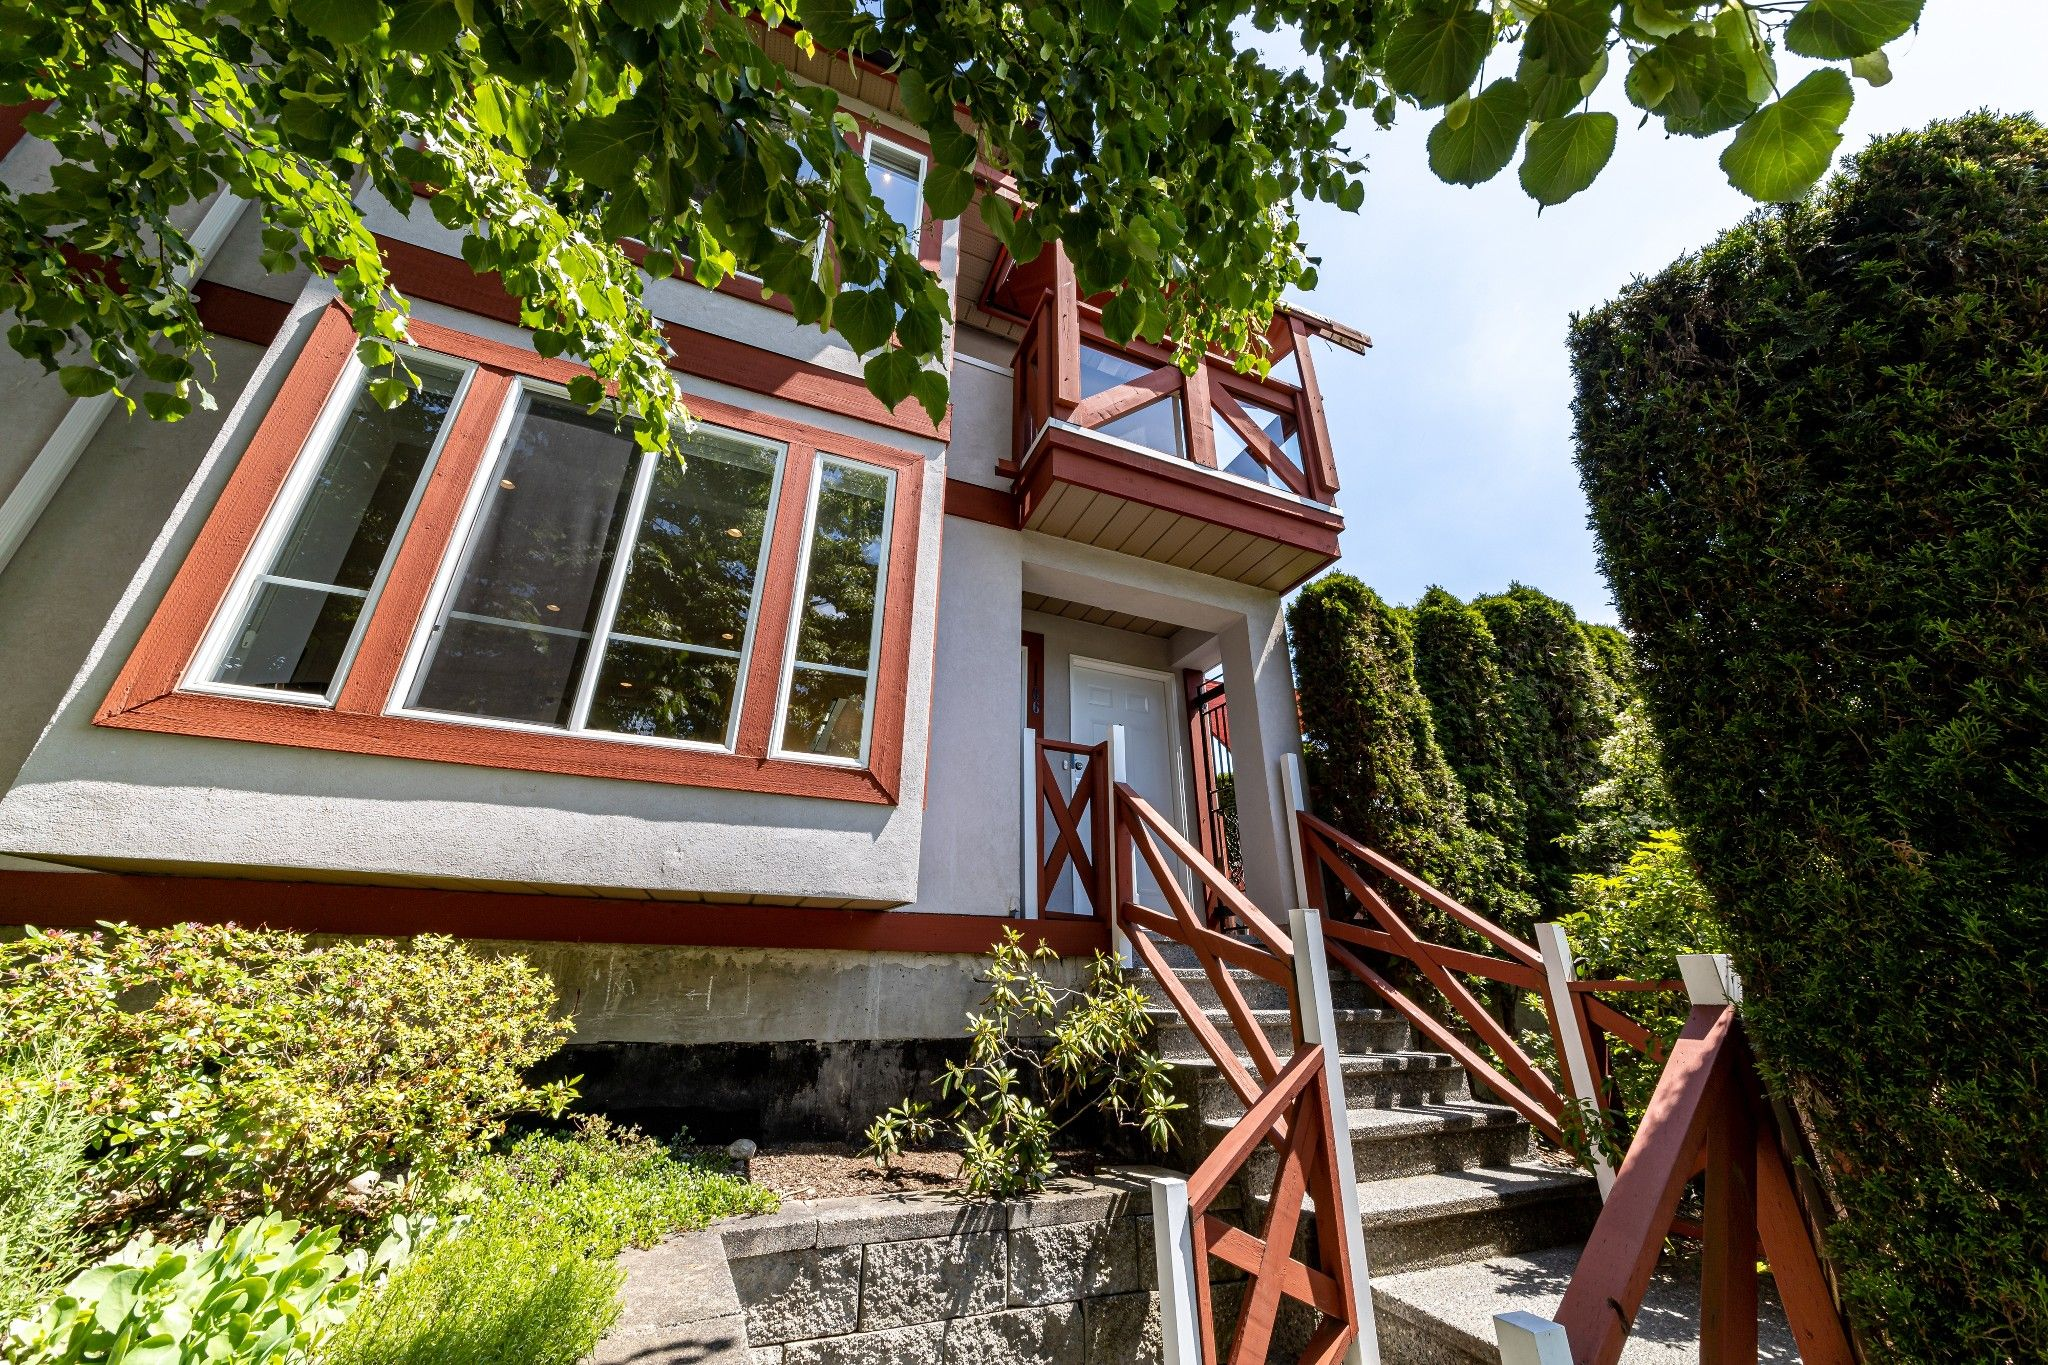 Main Photo: 1106 ST. GEORGES Avenue in North Vancouver: Central Lonsdale Townhouse for sale : MLS®# R2460985